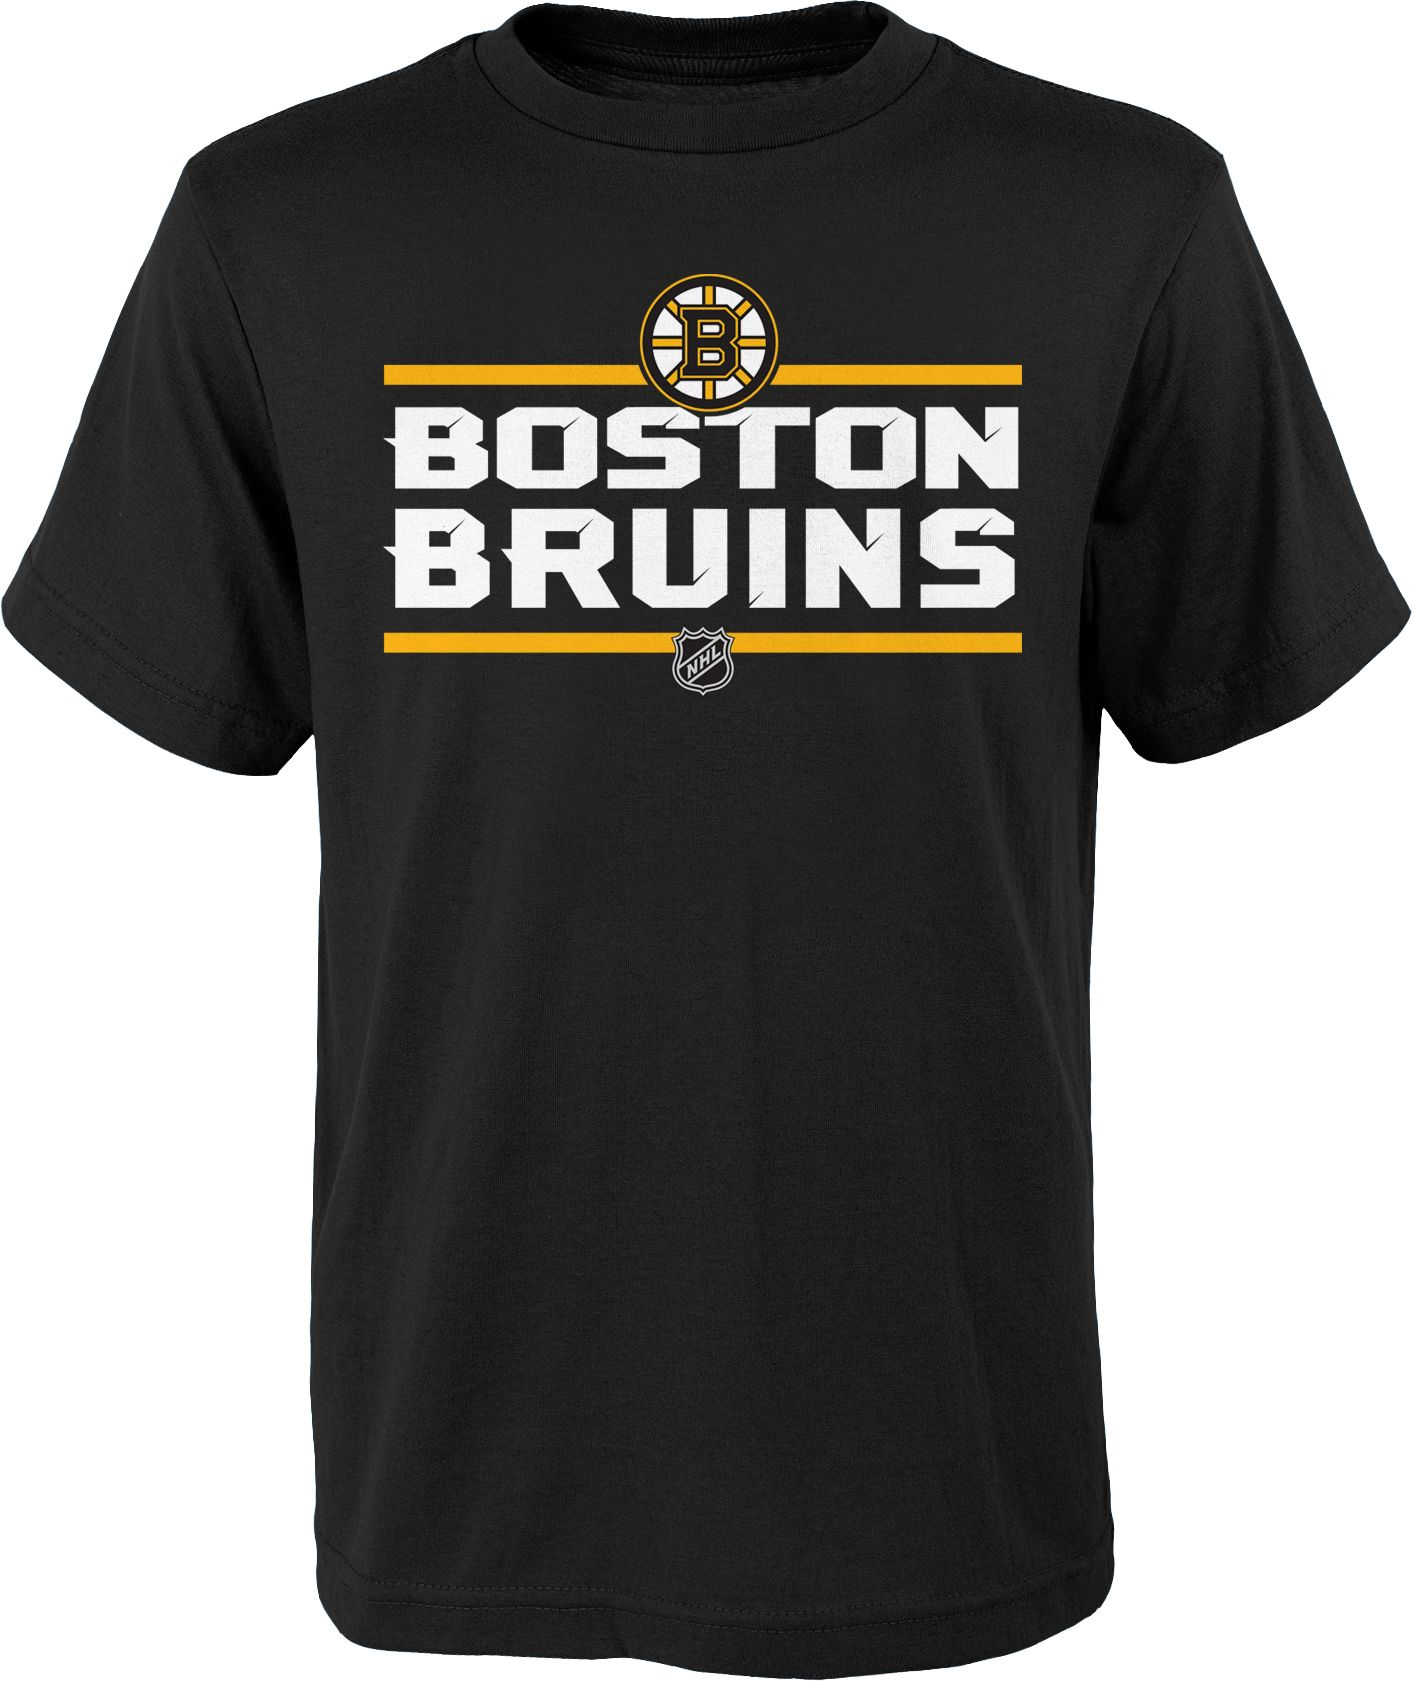 bruins jerseys youth sizes